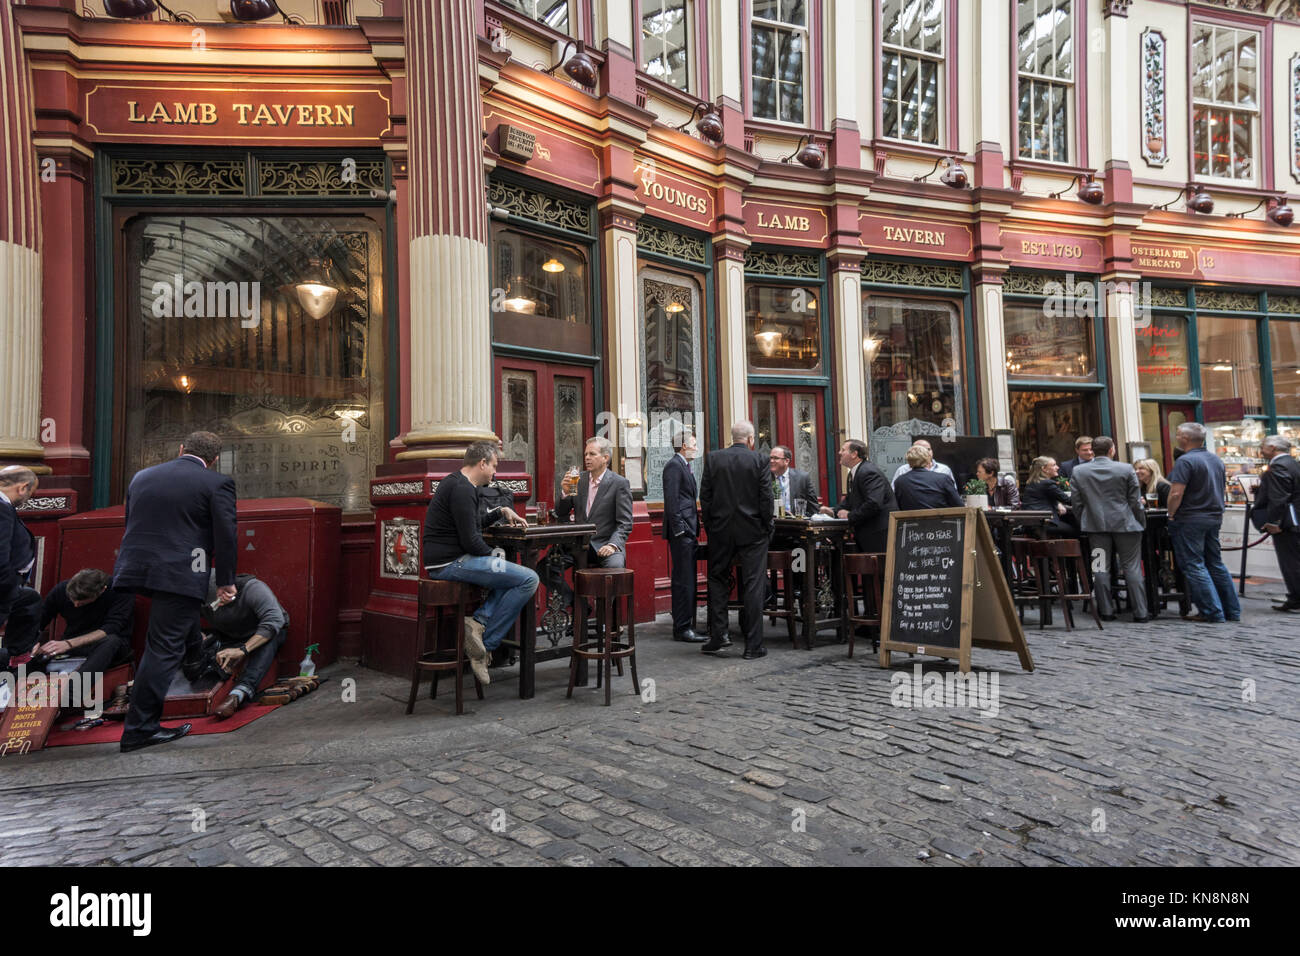 Leadenhall Market, Lamp Tavern Pub, Financial  District, London, UK - Stock Image